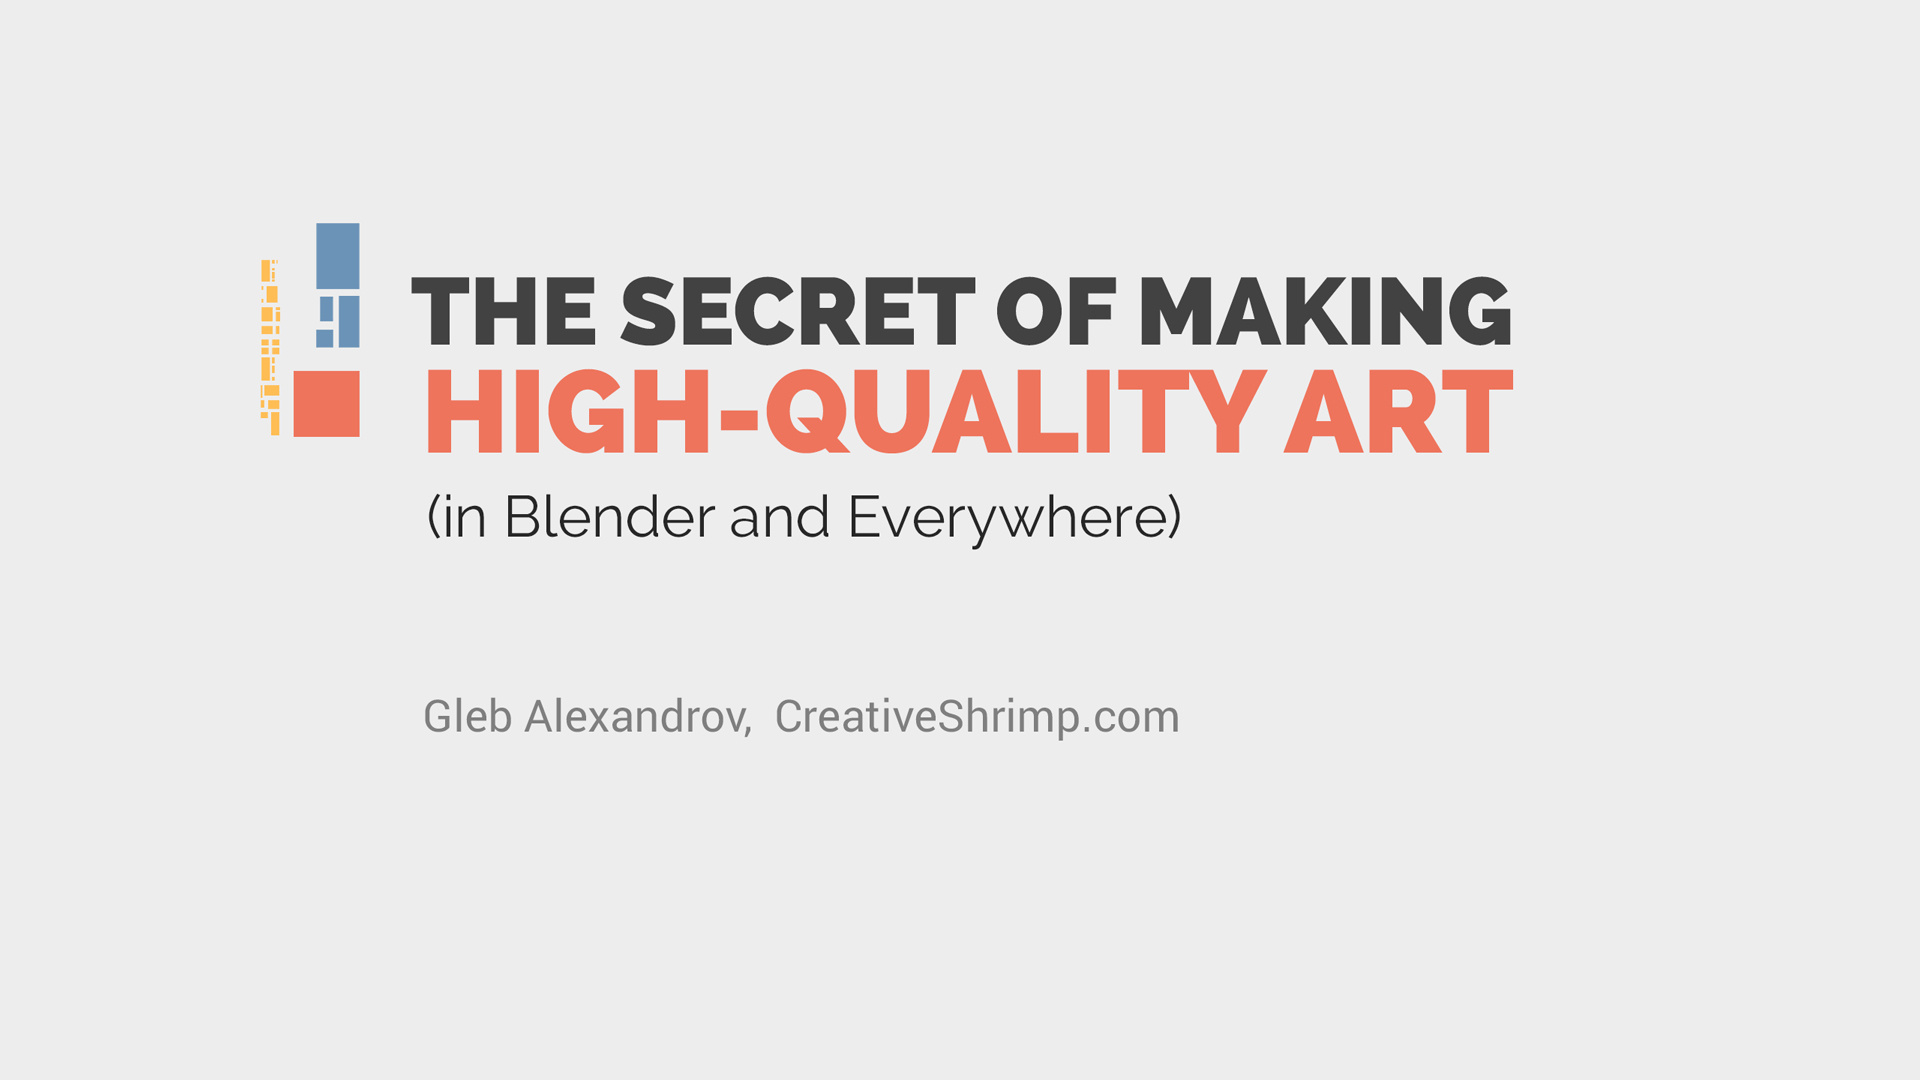 The Secret of Making High-Quality Art (in Blender and